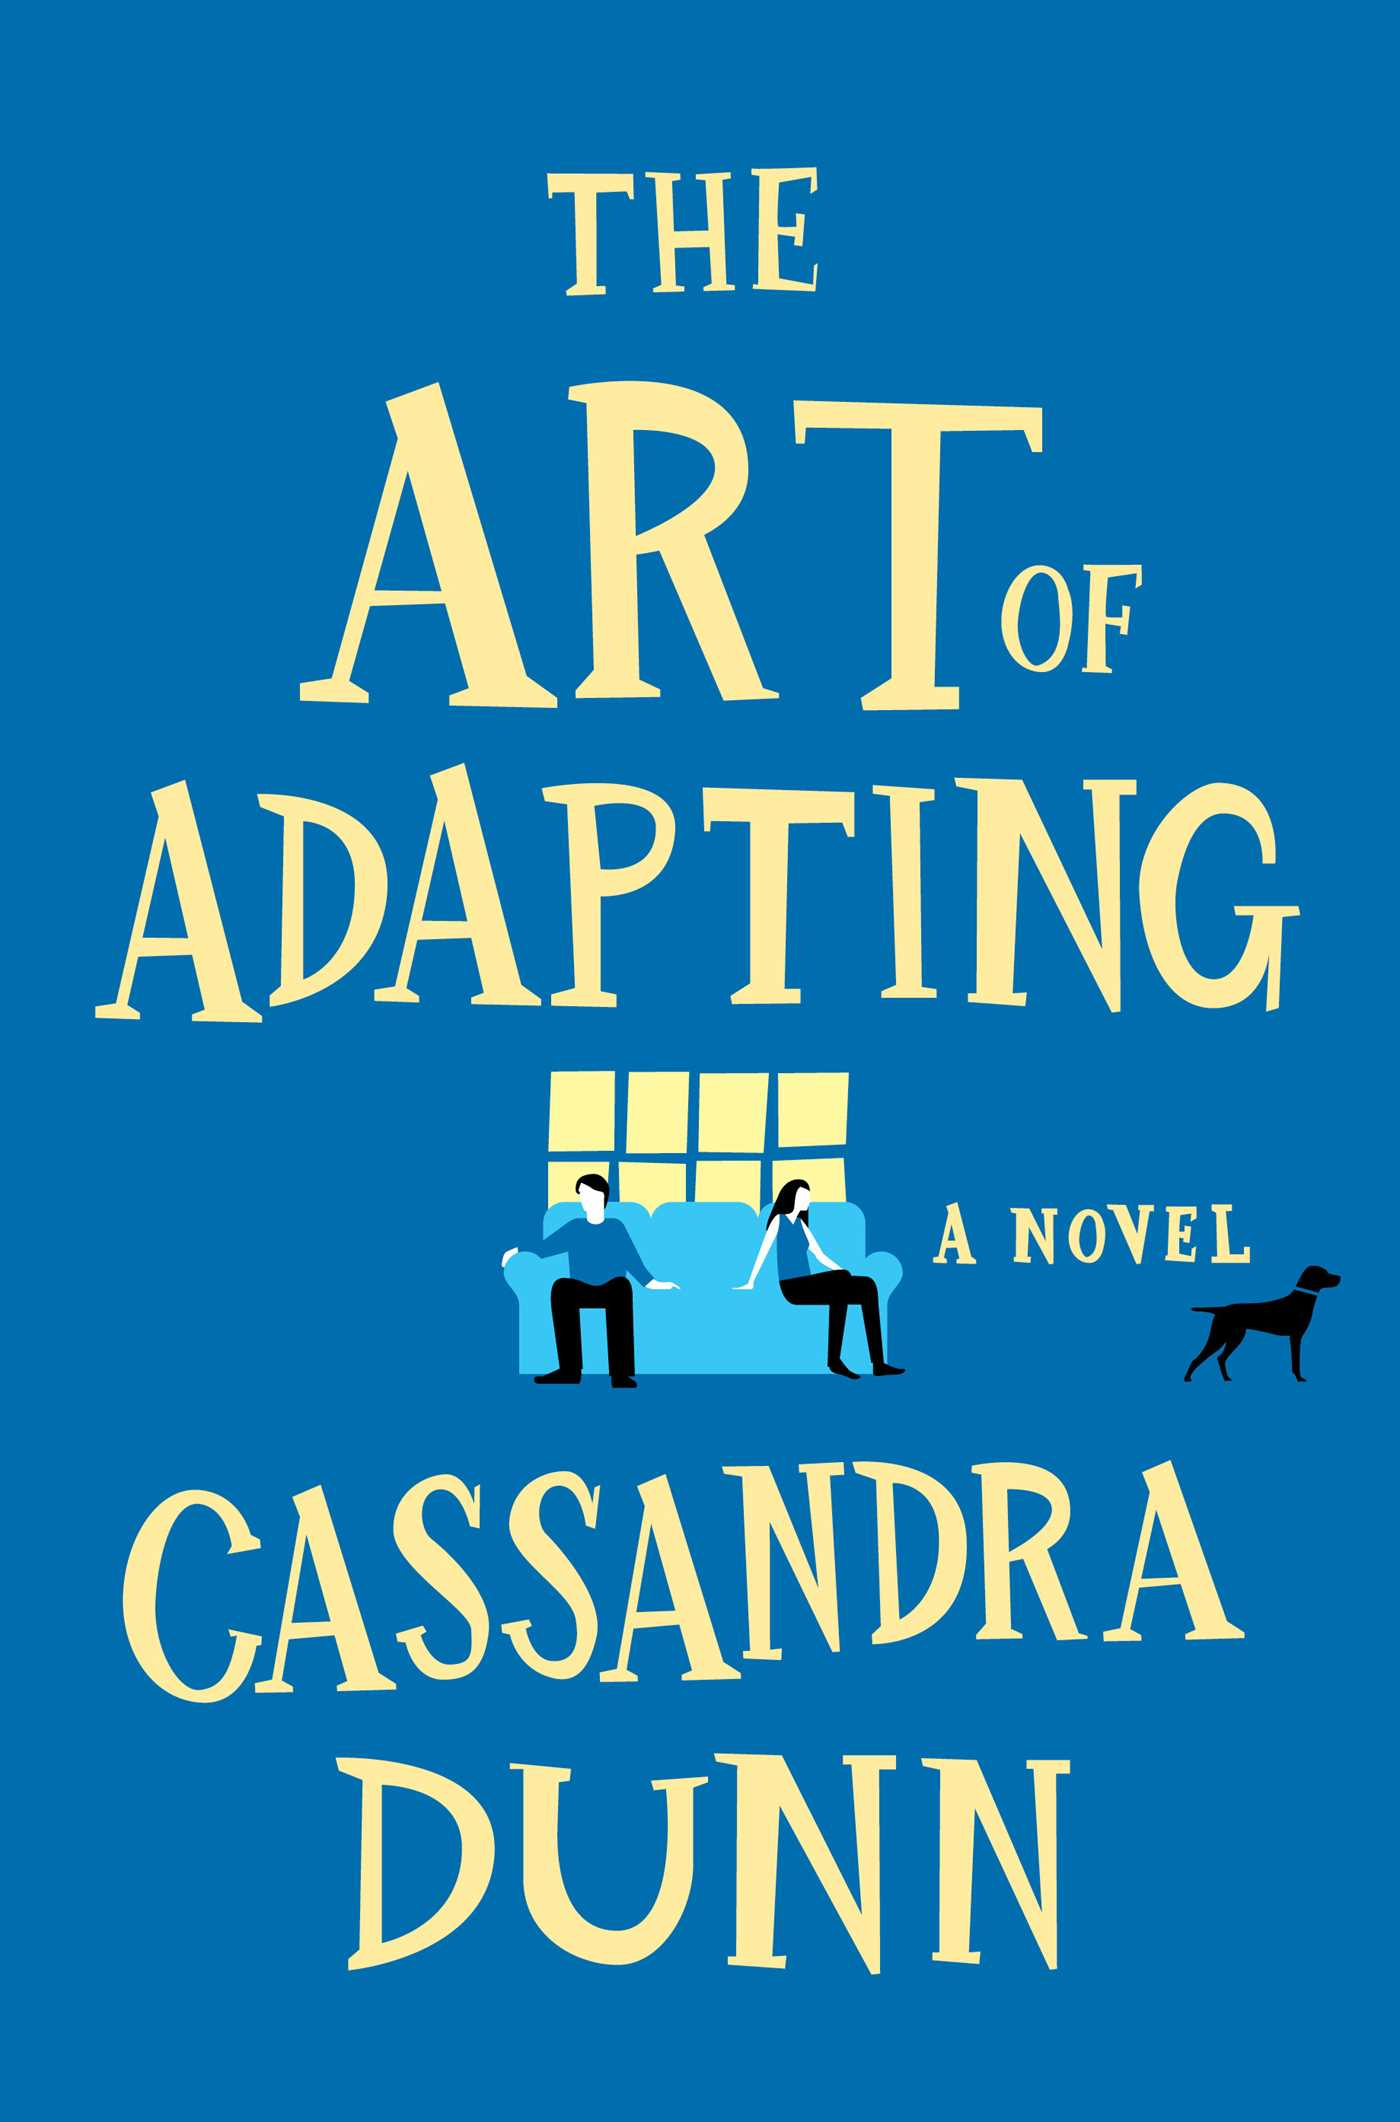 Art-of-adapting-9781476761602_hr